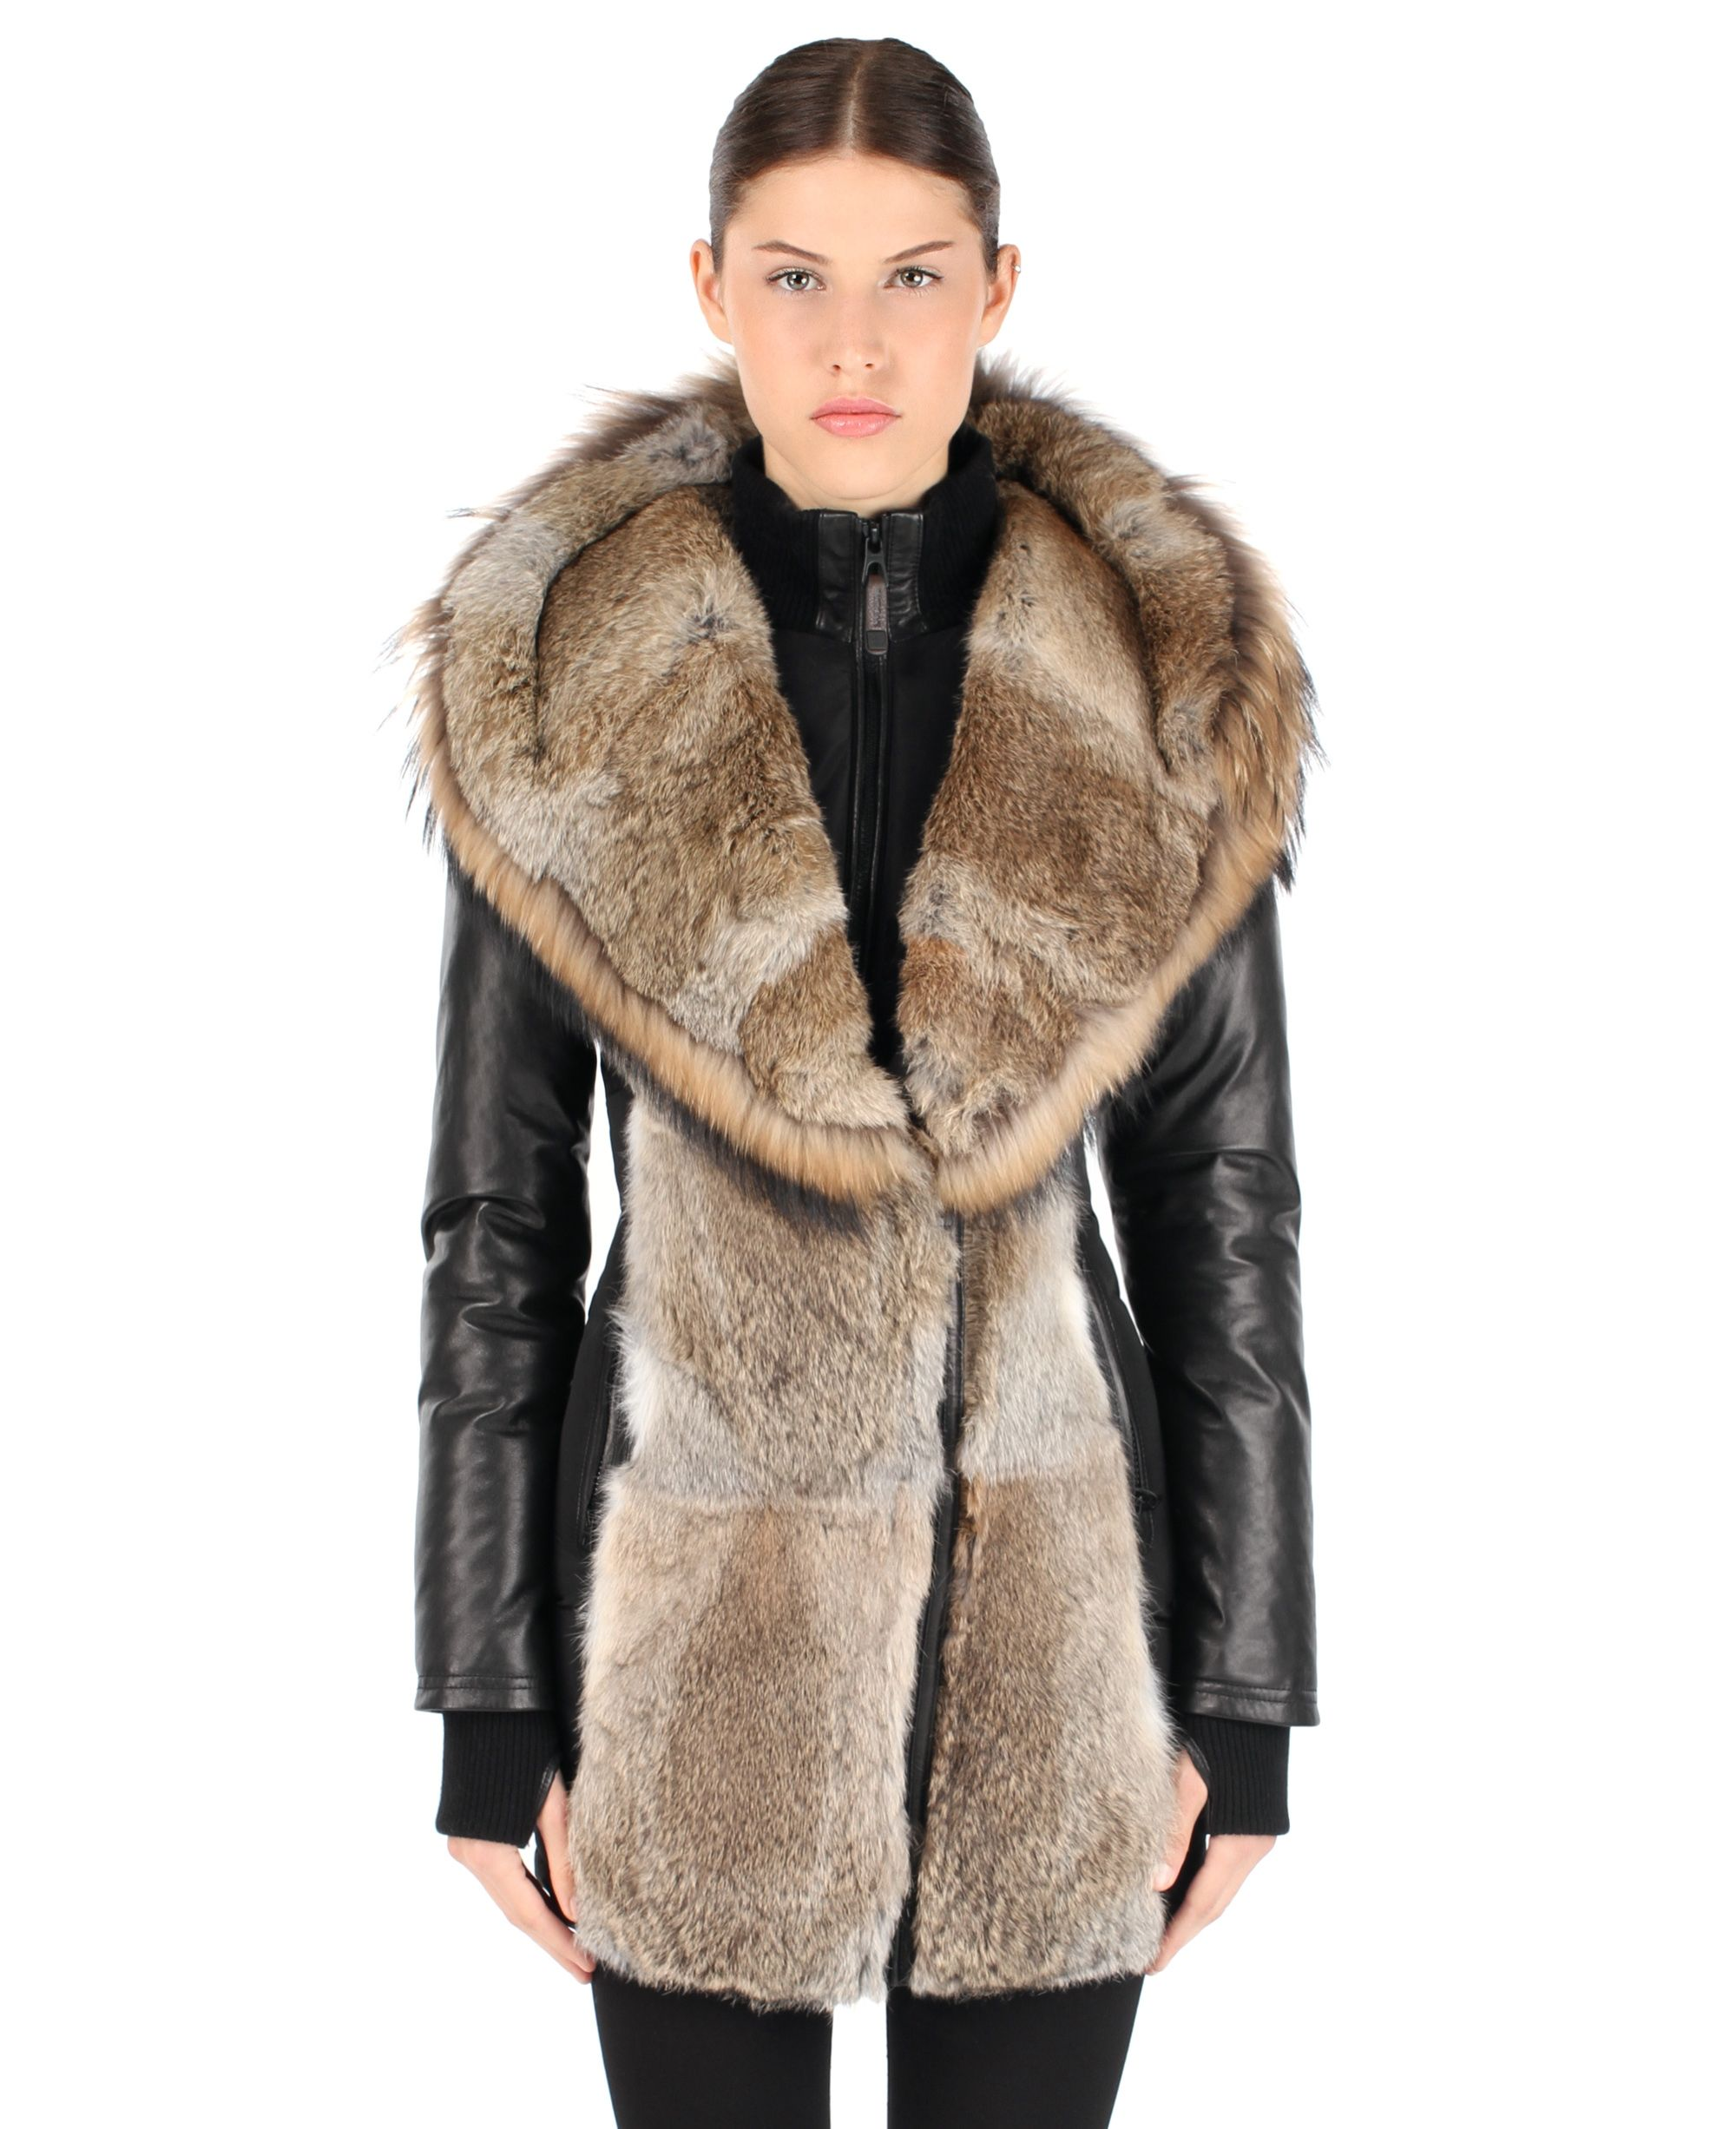 f693ac65c26ee RUDSAK A Fur Savvy Lady (BLACK, MEMORY FABRIC/GENUINE LAMB LEATHER ) |  ARLY. Find this Pin and more ...